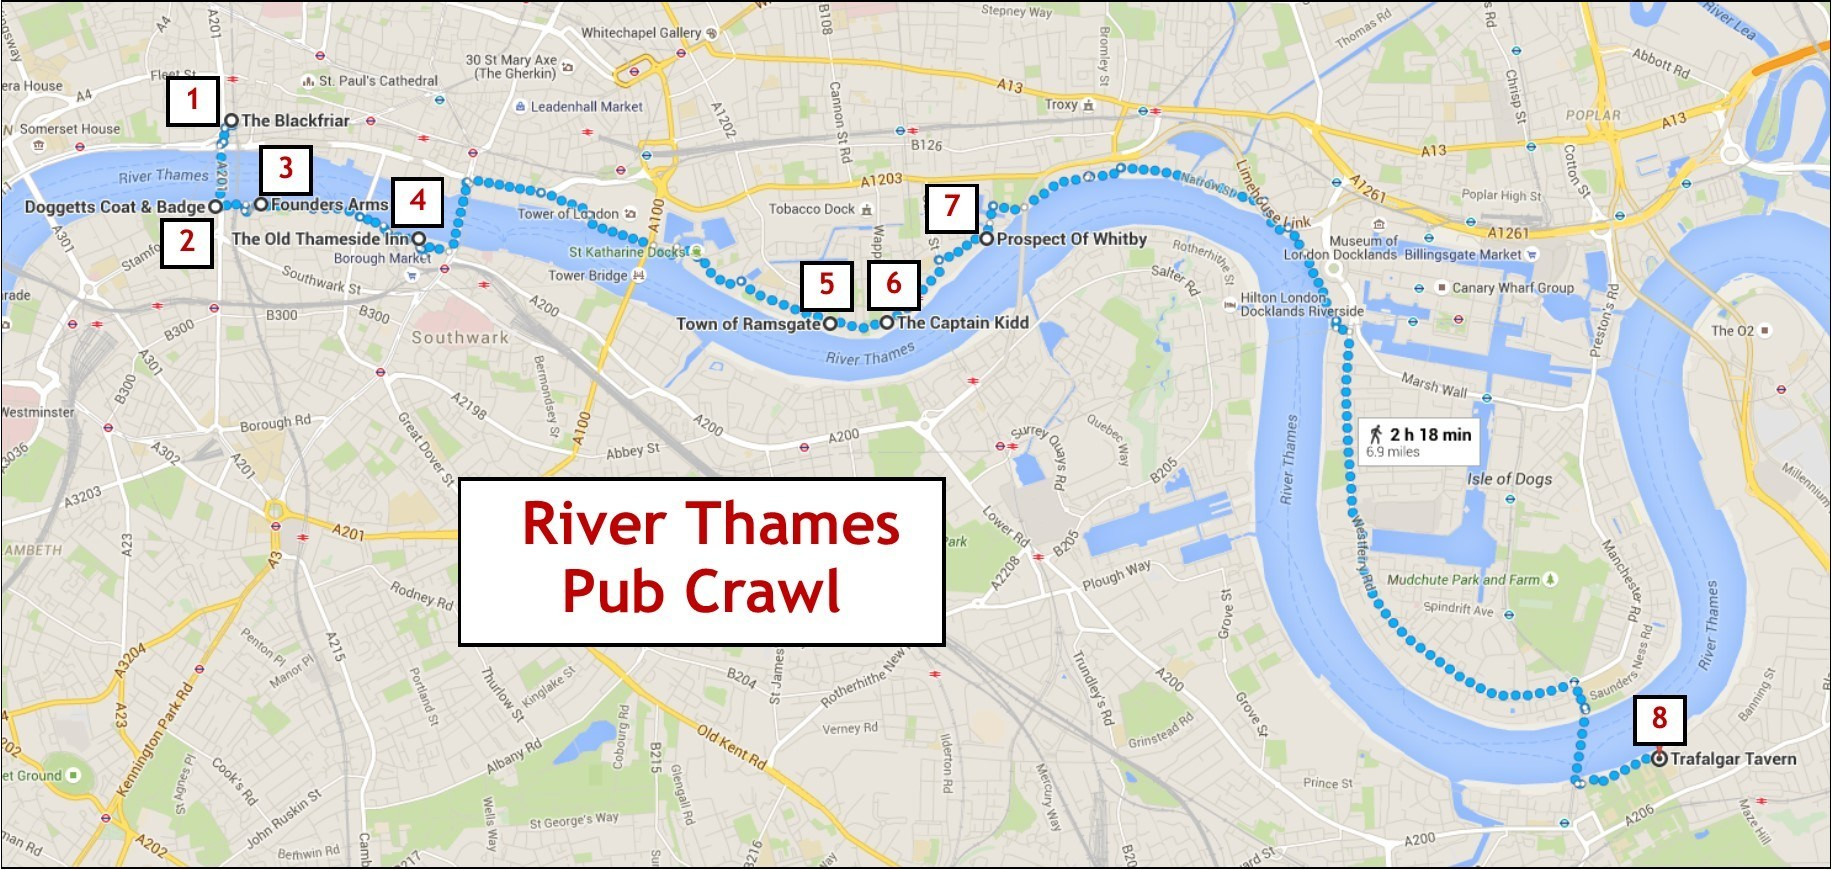 River Thames Pub Crawl - Jetsetting Fools